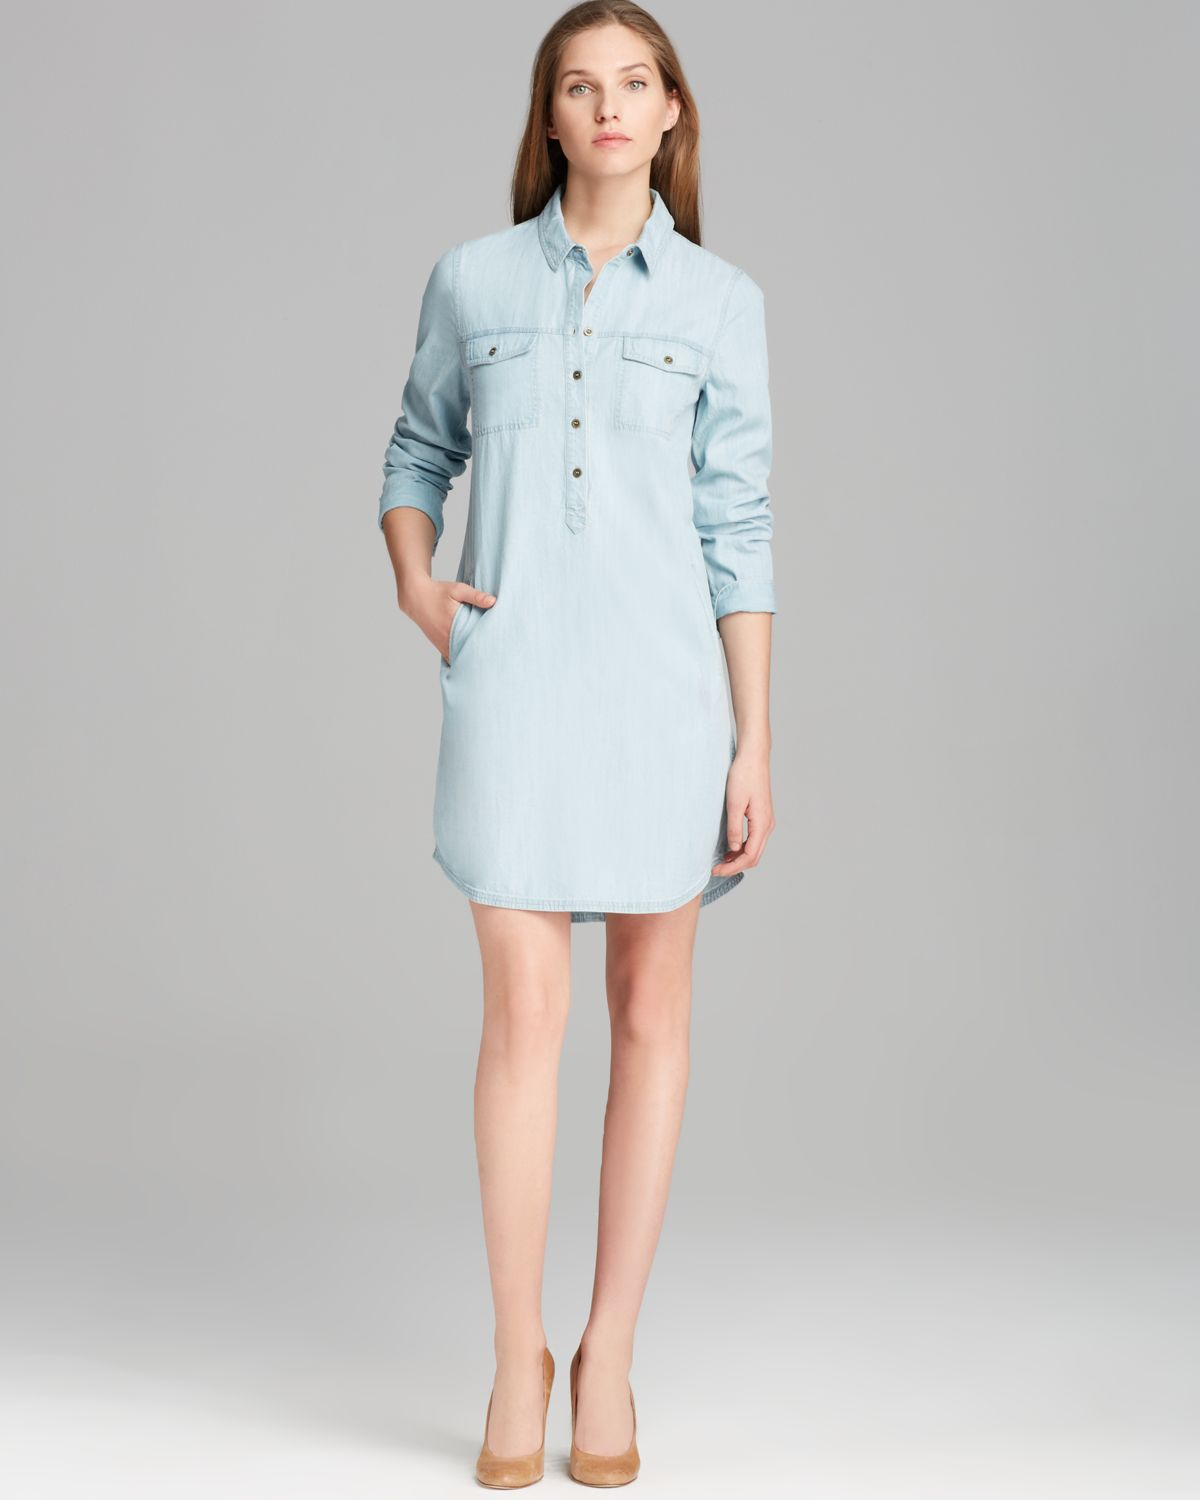 Eileen Fisher Denim Shirt Dress in Blue (Light Denim) | Lyst